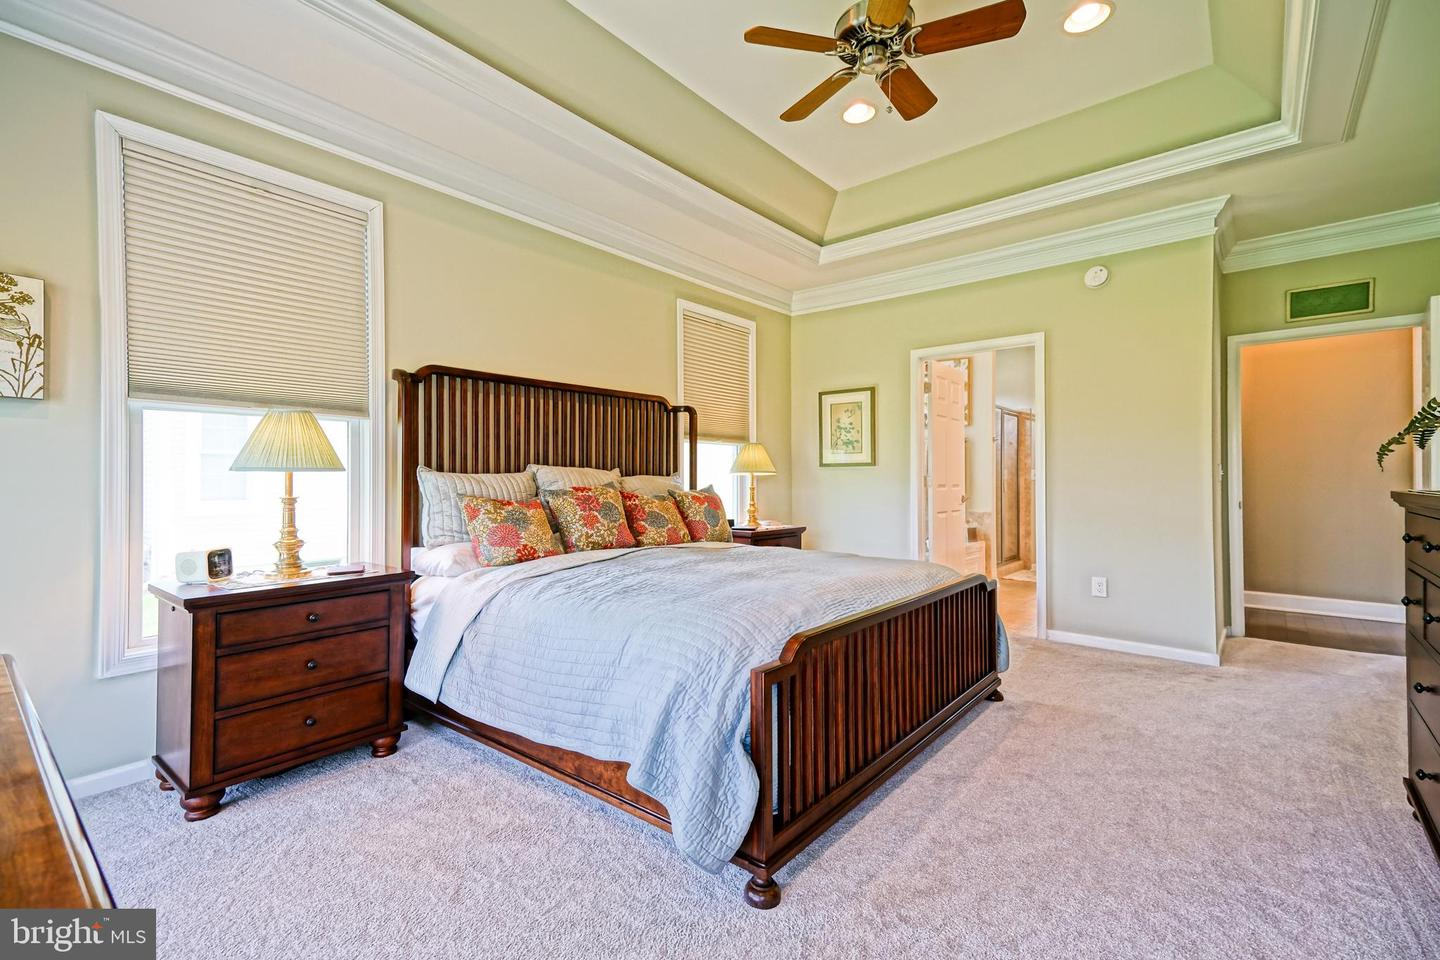 DESU139128-301667379496-2019-08-05-10-43-56 35222 Overfalls Dr N | Lewes, DE Real Estate For Sale | MLS# Desu139128  - Lee Ann Group